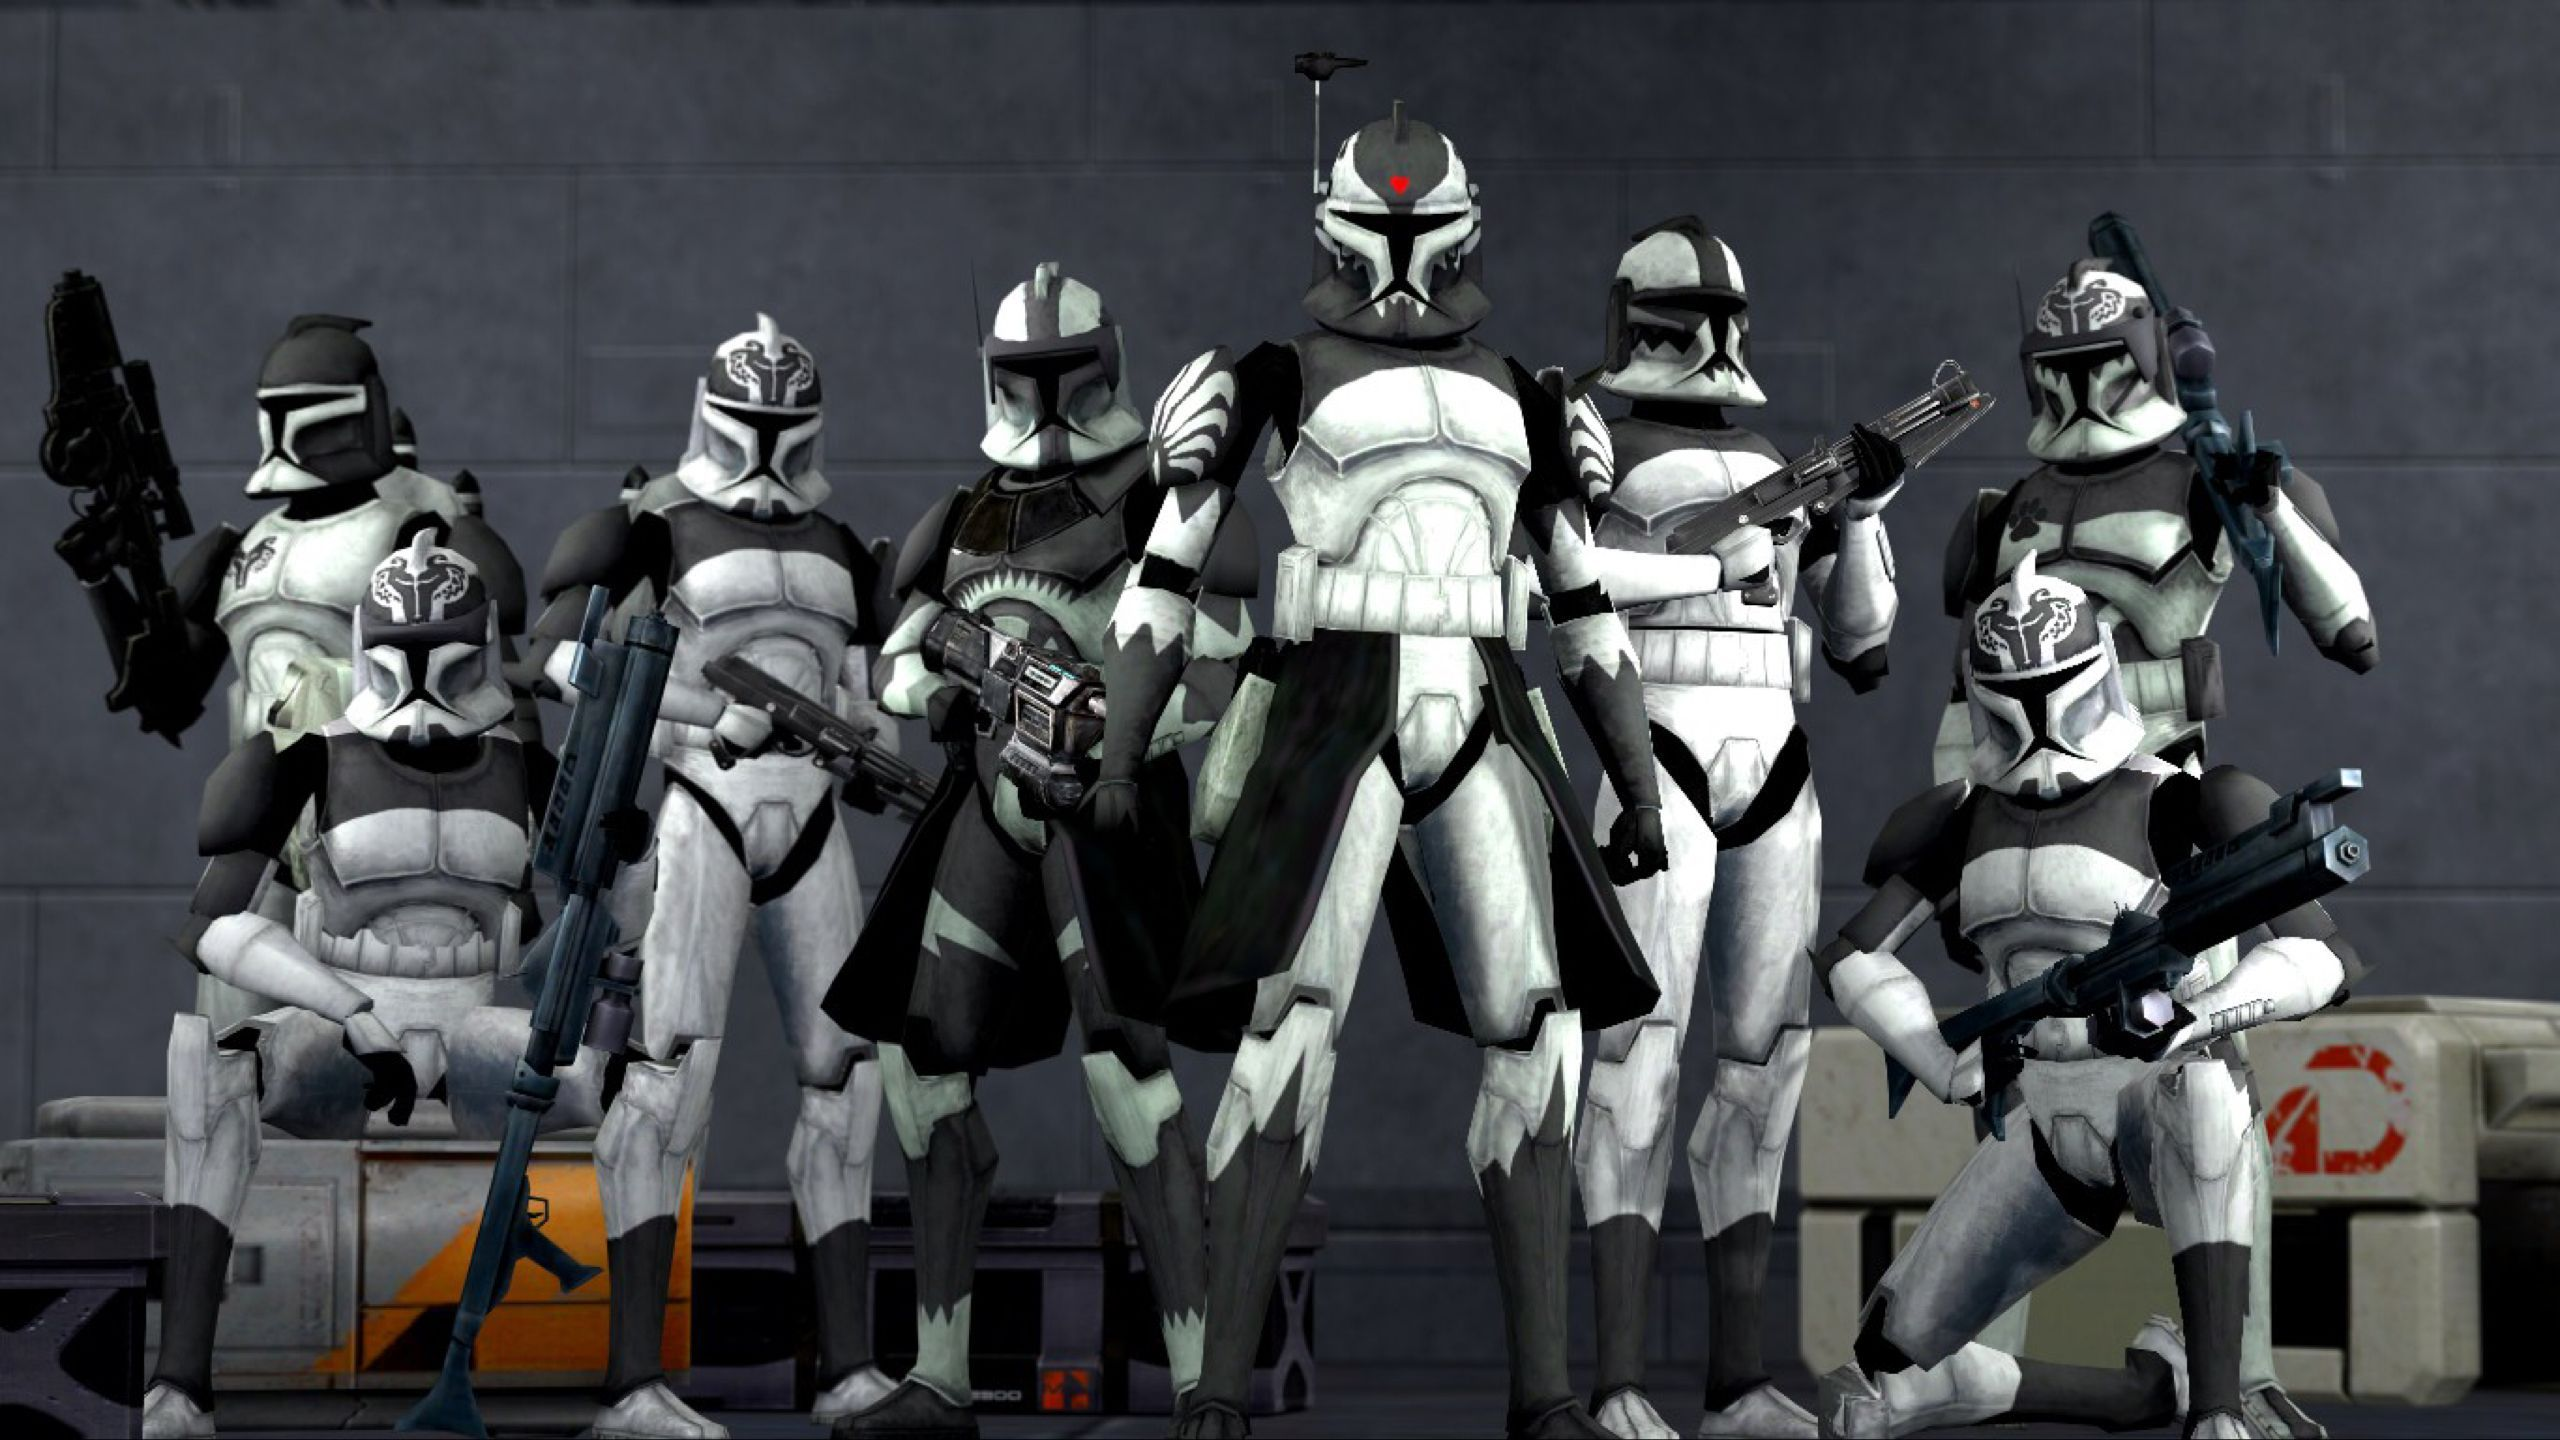 Commander Wolffe and The Wolfpack by dumbass333 on @DeviantArt